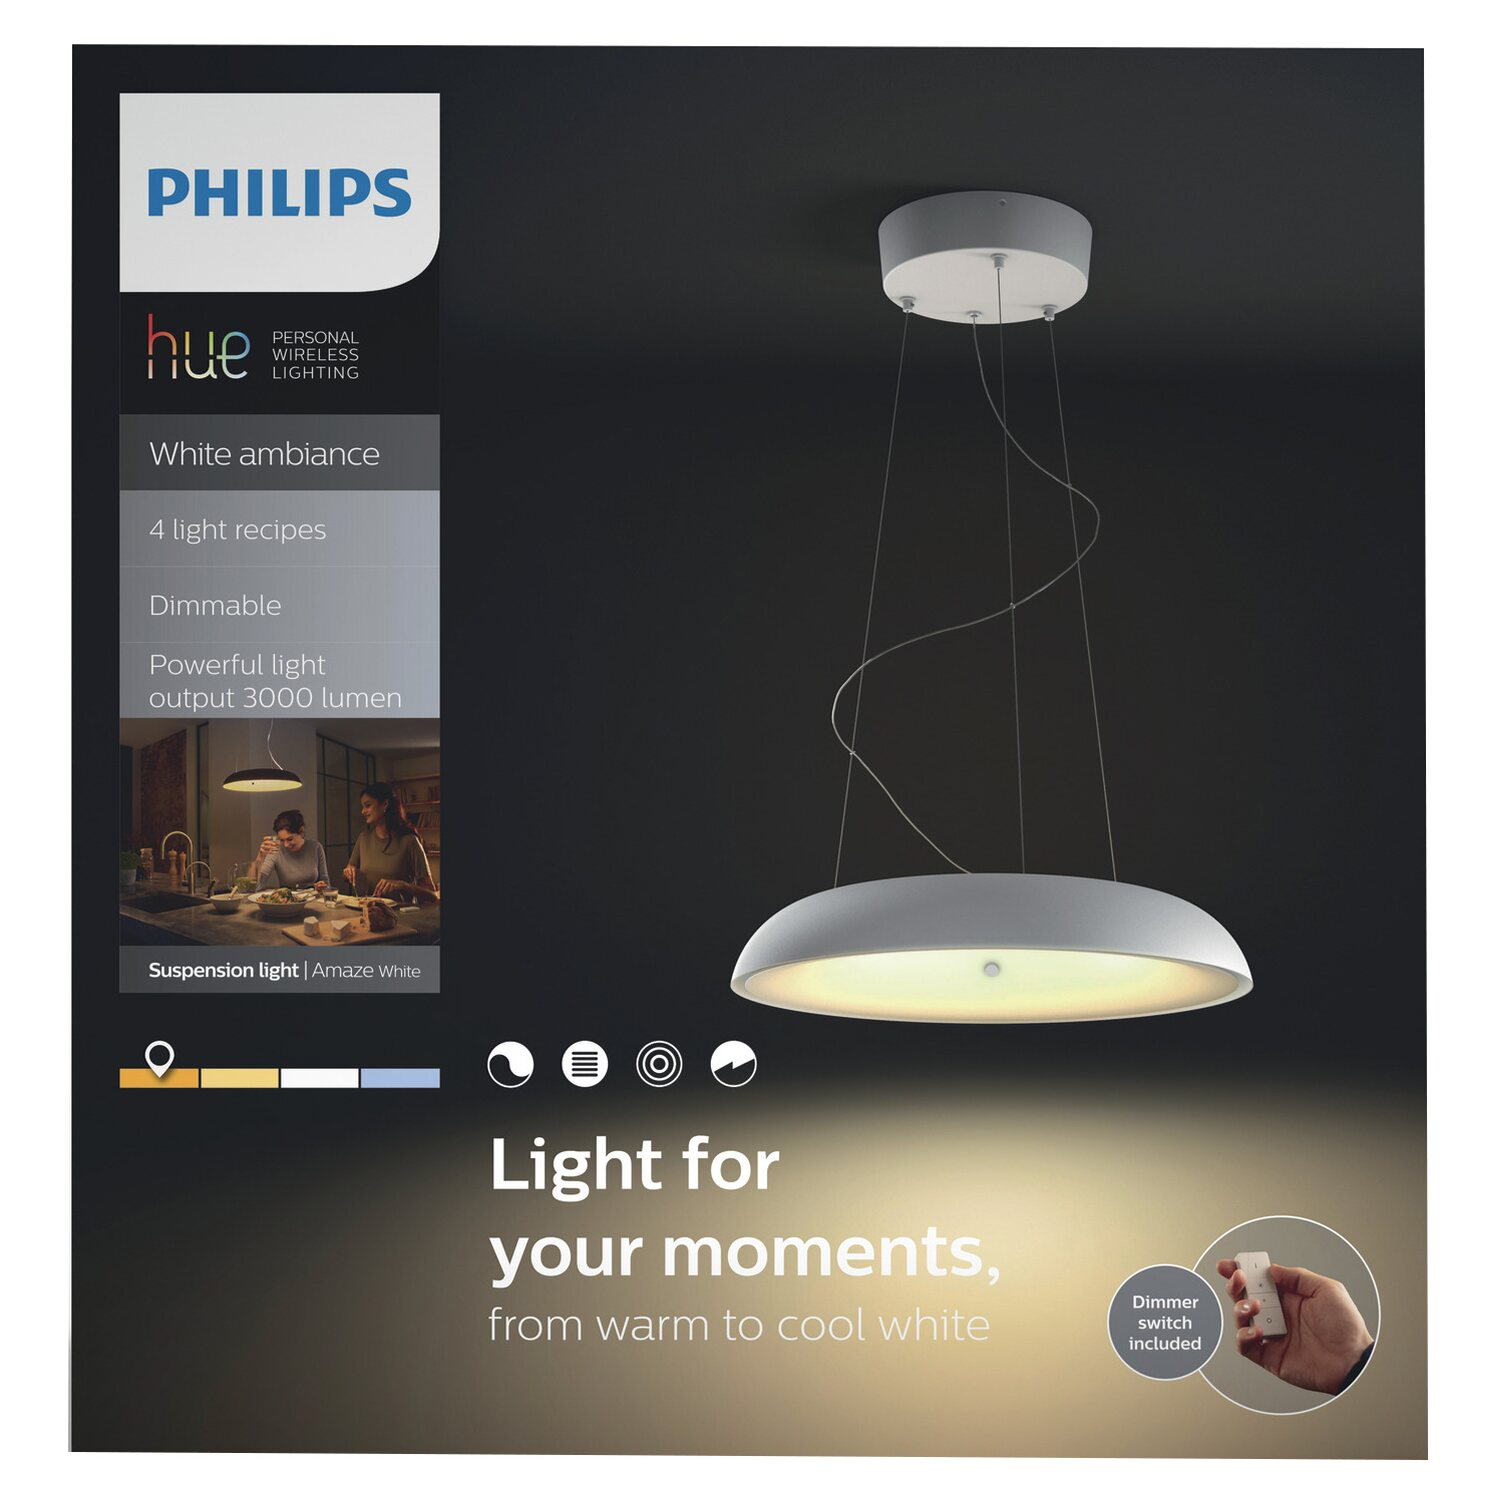 Philips Hue lampadario a sospensione LED Amaze